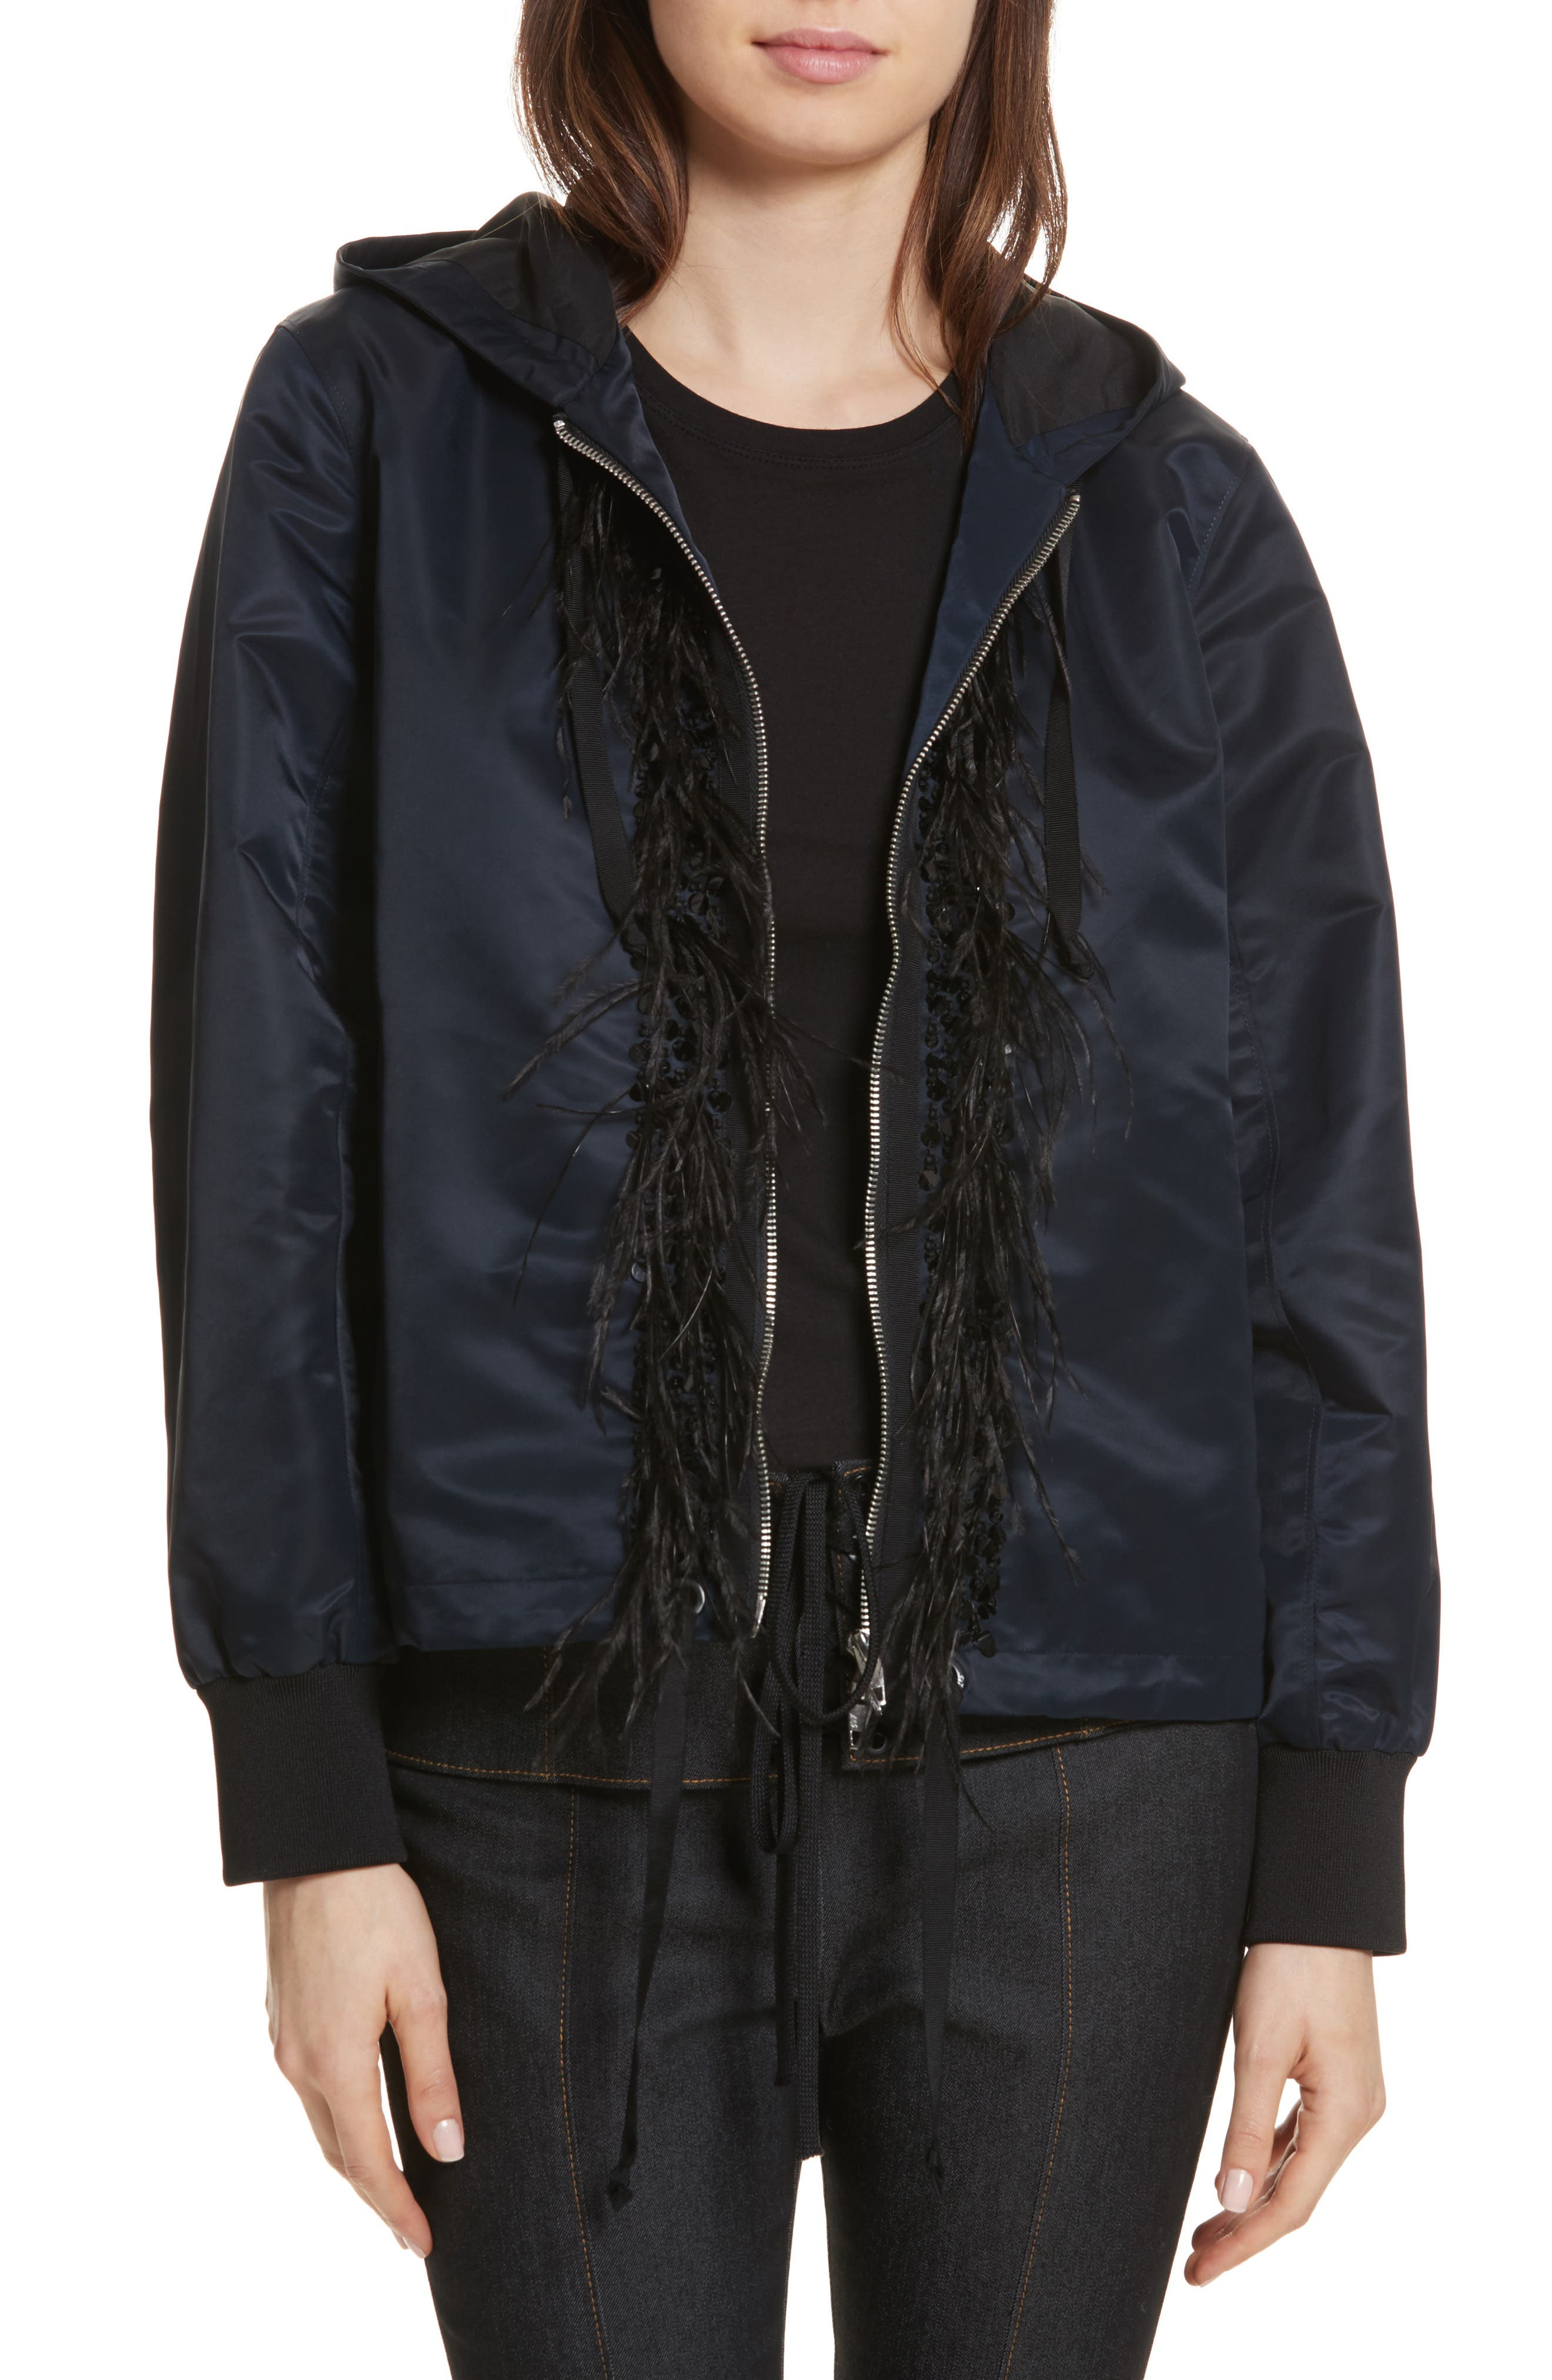 Collette Hooded Feather Trim Jacket,                             Main thumbnail 1, color,                             Navy/ Black